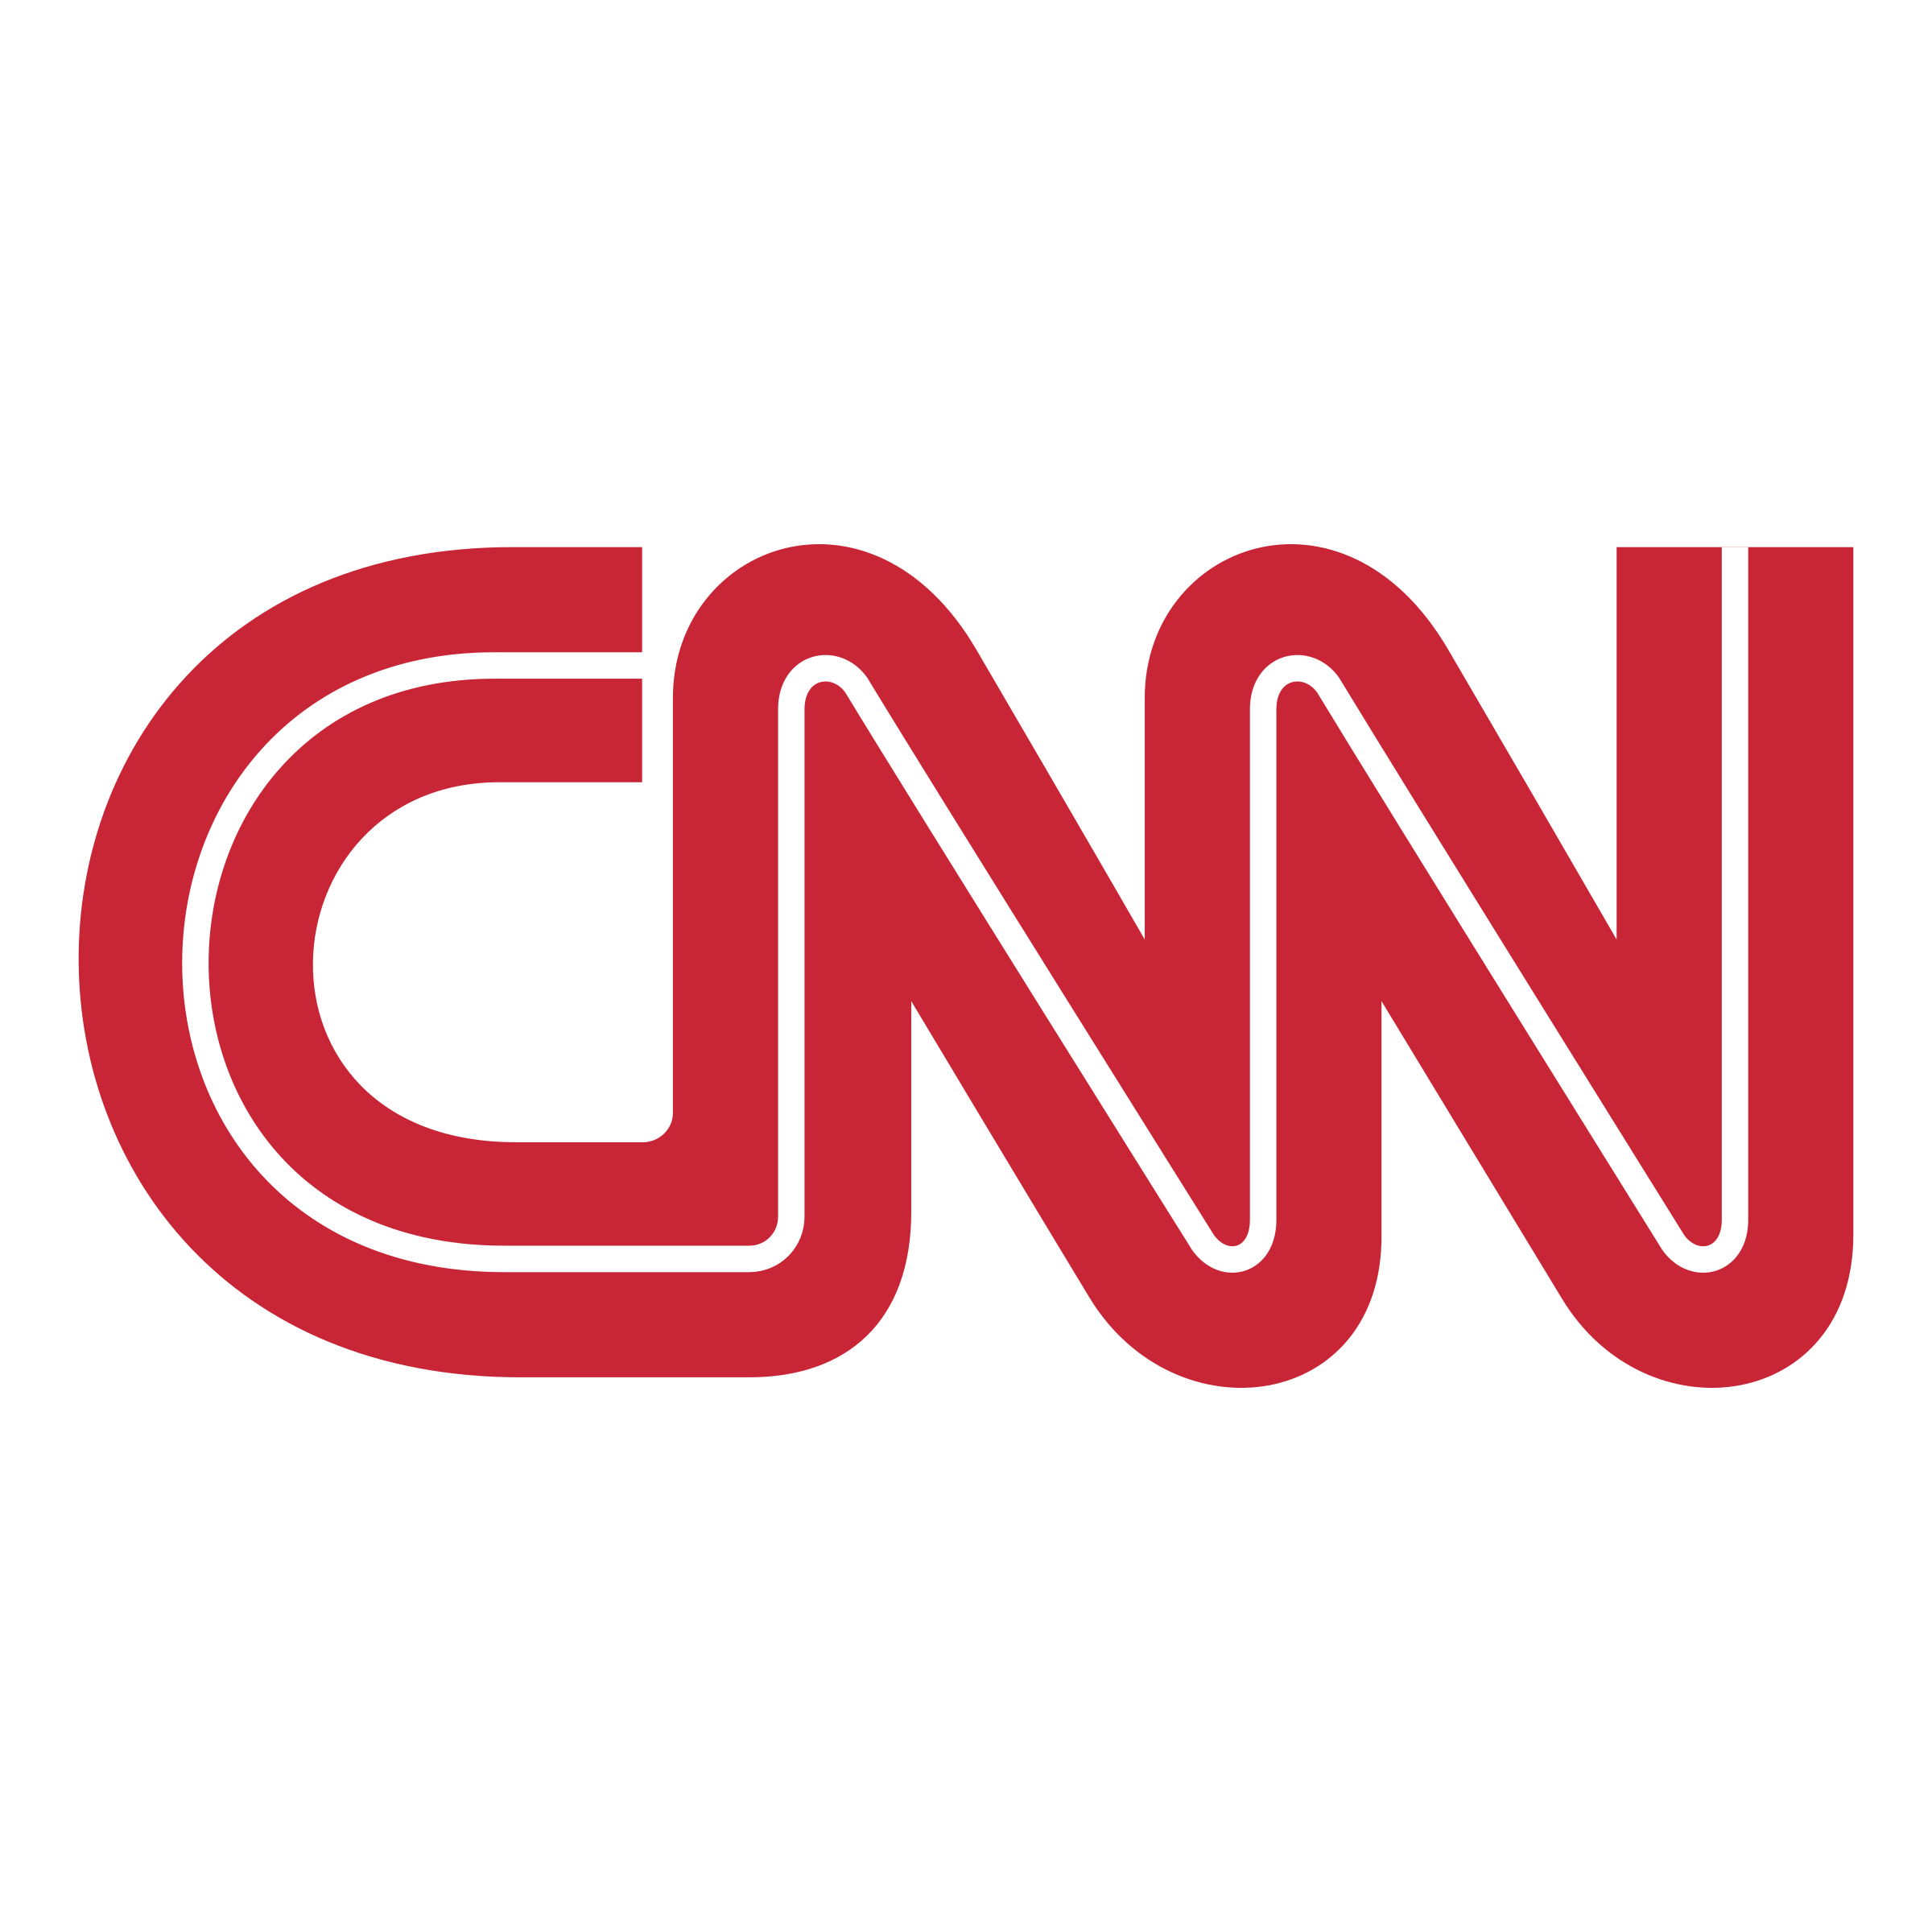 cnn-1-logo-png-transparent